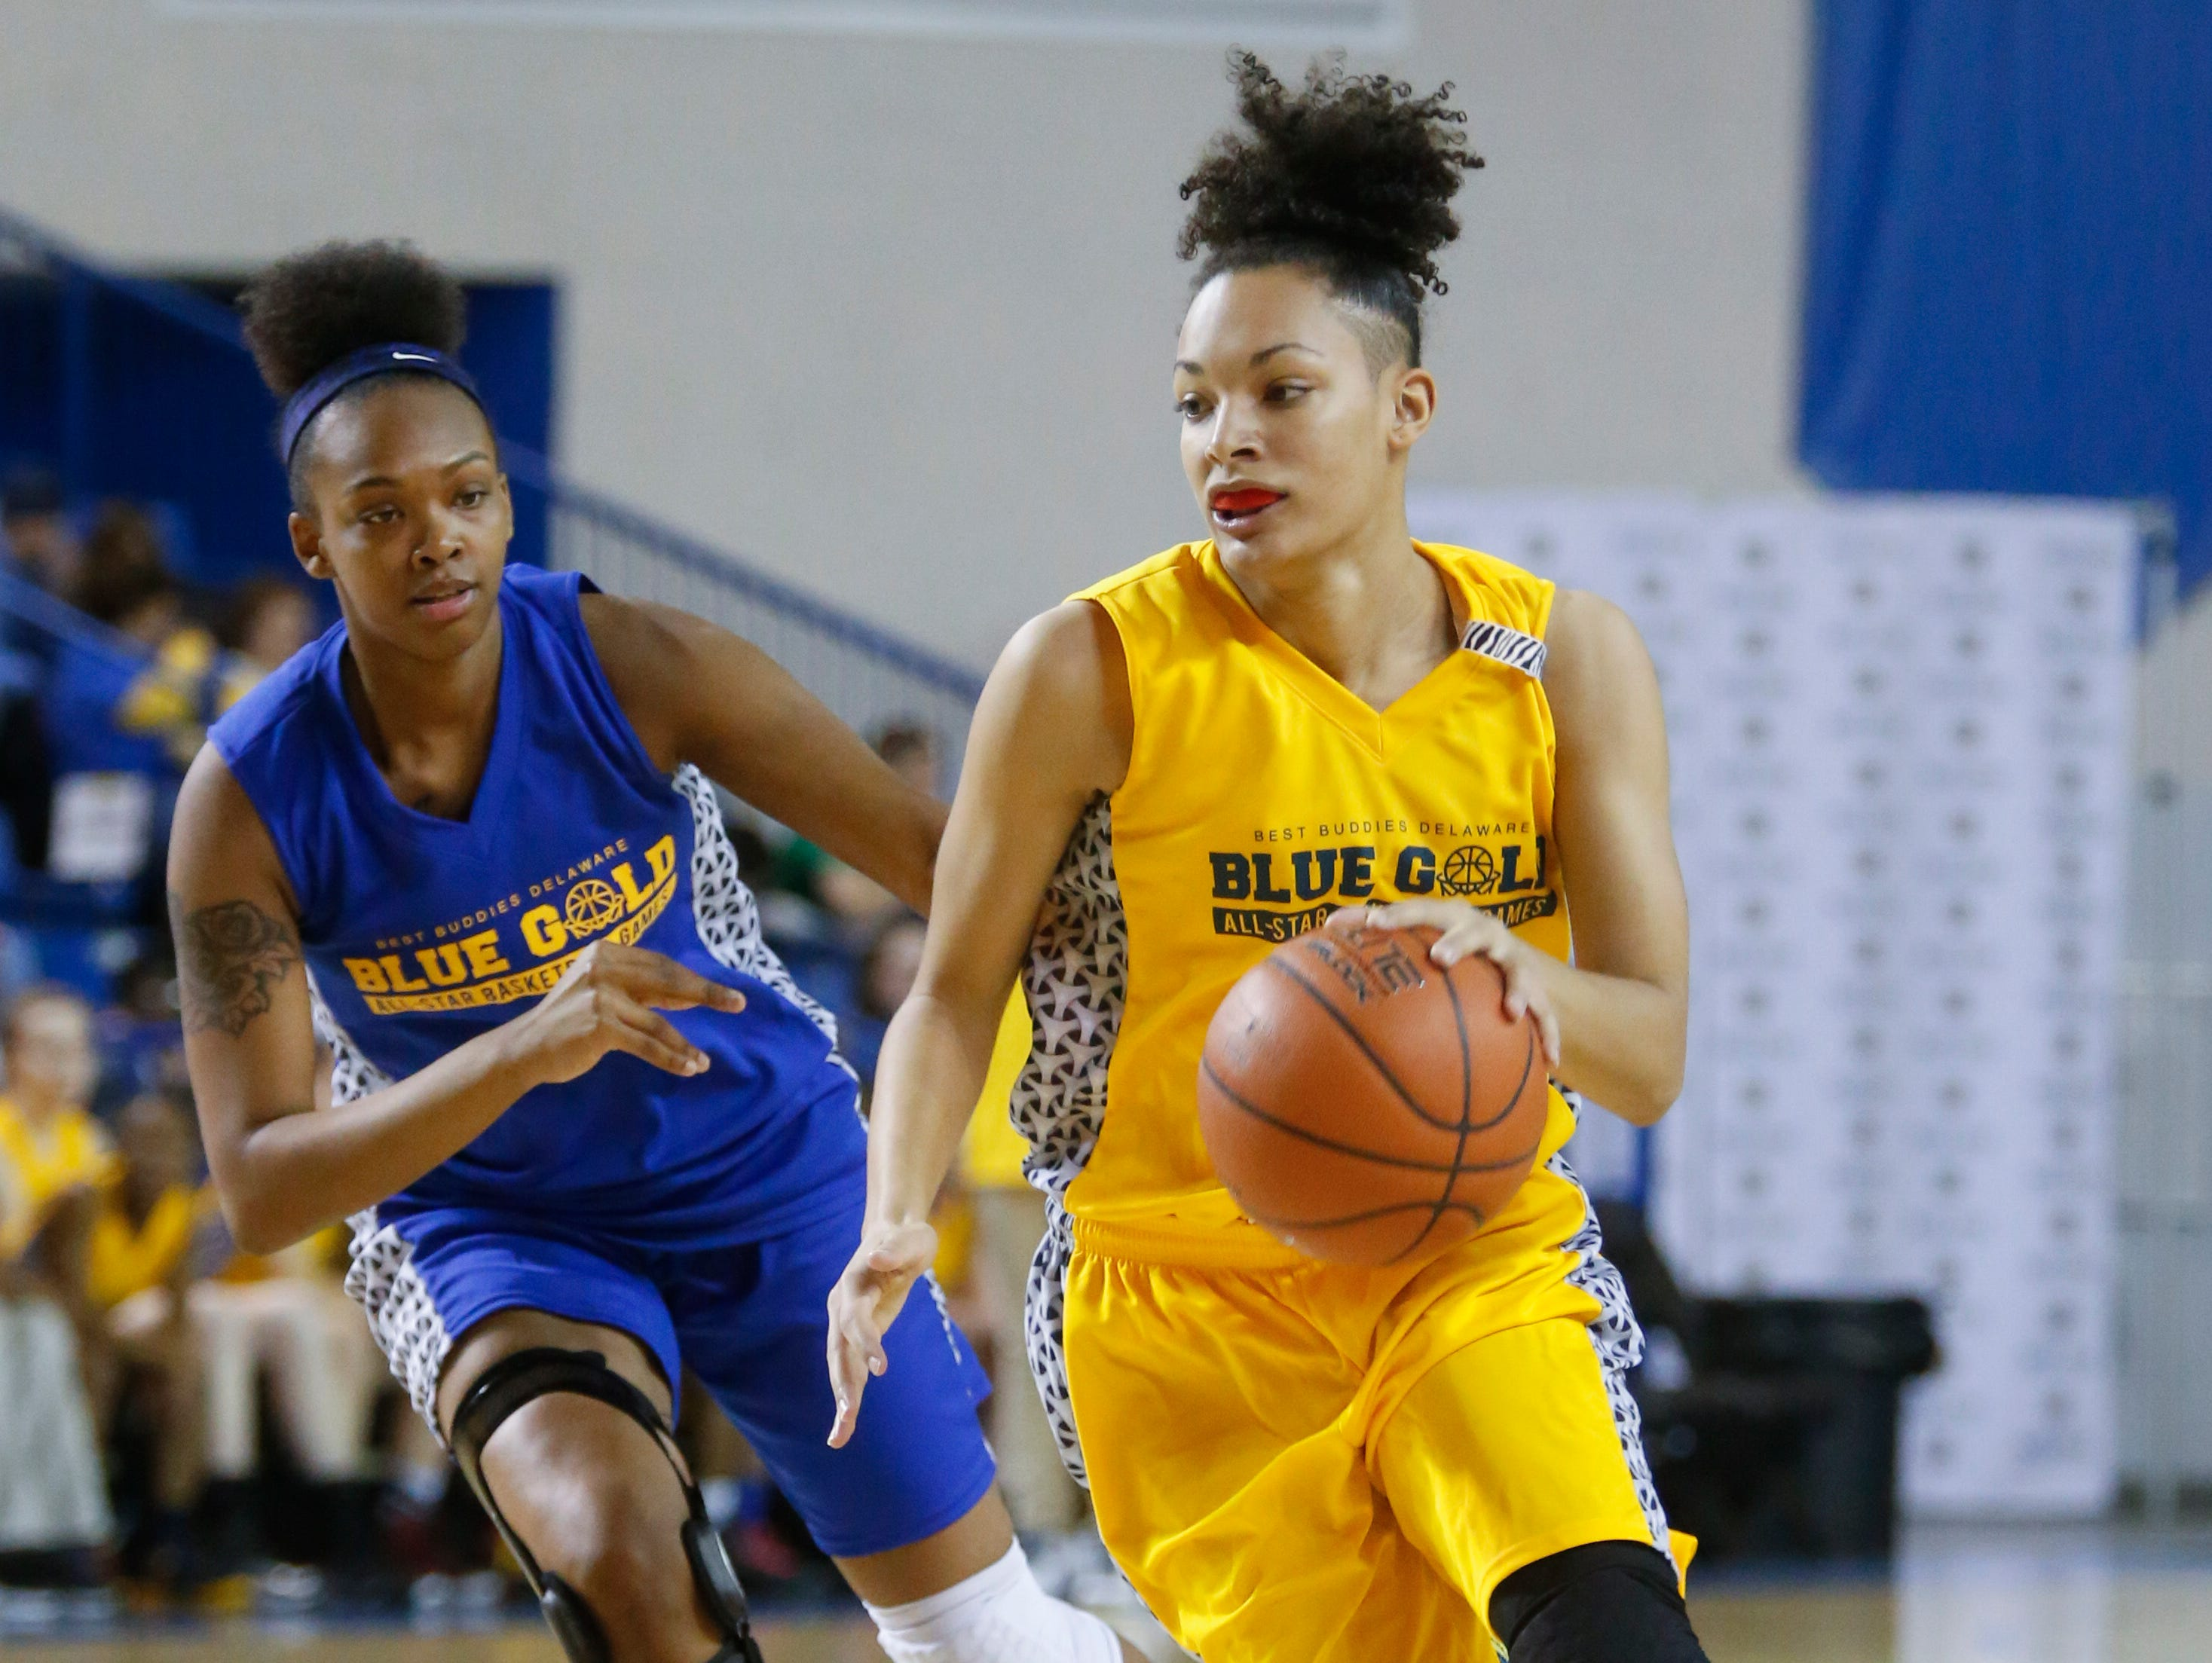 Blue's Al'Kirah Wilson of A.I. du Pont (left) defends as Gold's Melena Credle of Smyrna pushes the ball into the offensive zone in the first half of the Blue-Gold All-Star Basketball game at the Bob Carpenter Center Saturday.